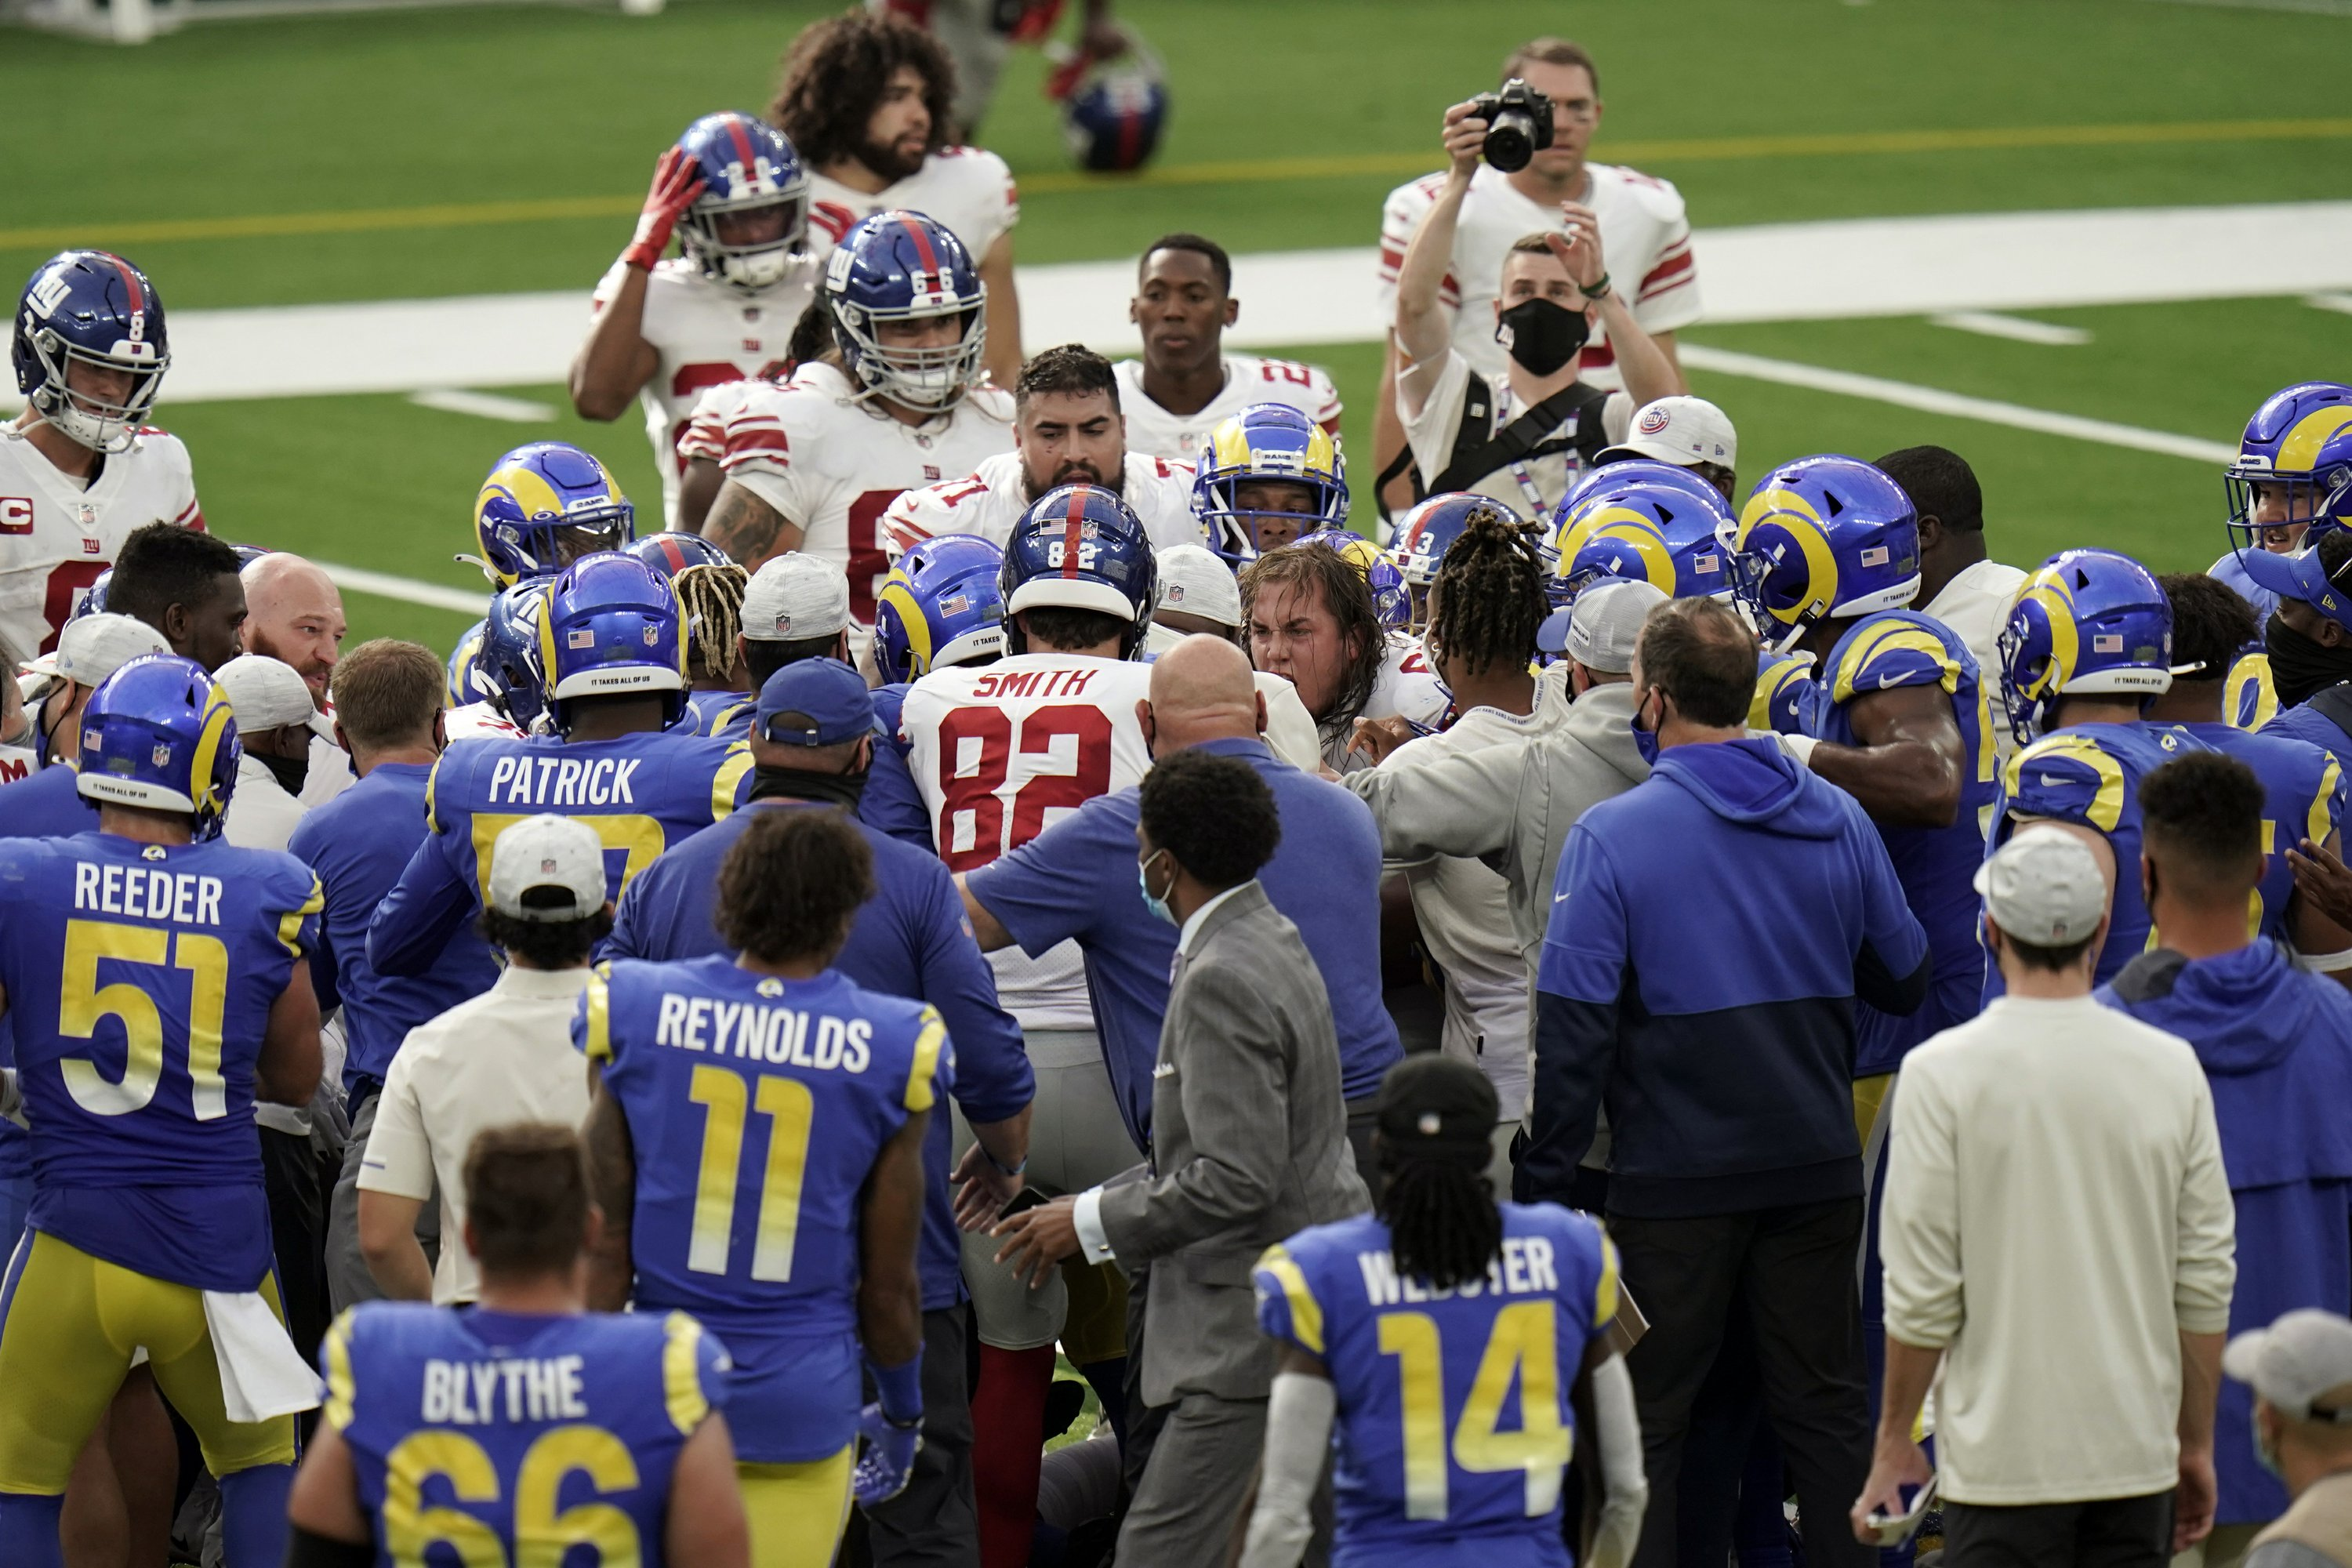 Family Feud Giants Tate Rams Ramsey In Postgame Fracas Tate was born breanna edna tate on april 4, 1995, in tennessee; family feud giants tate rams ramsey